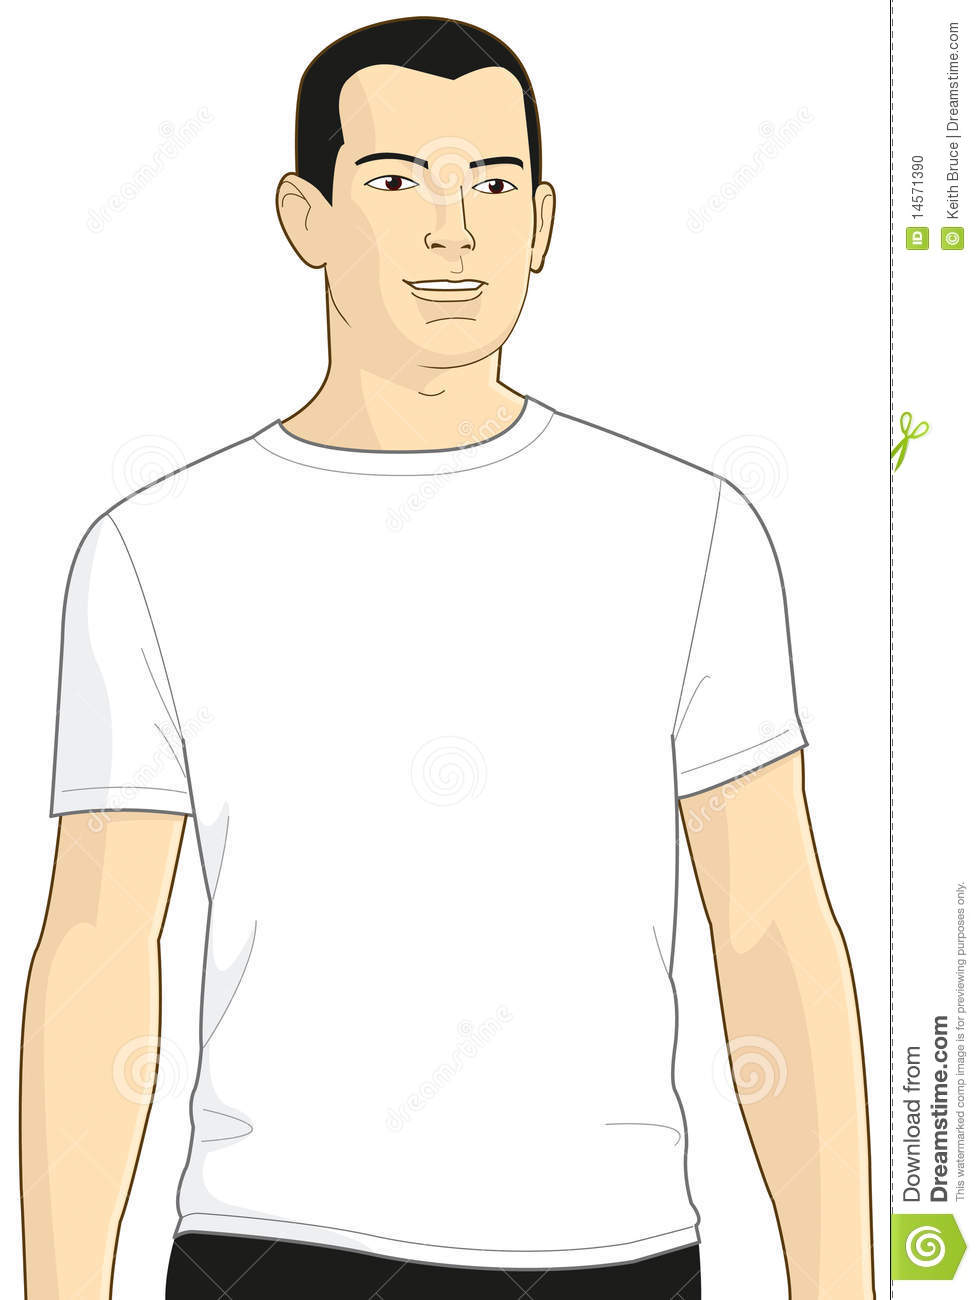 Blank white t shirt model man 3 stock illustration image for T shirt template with model